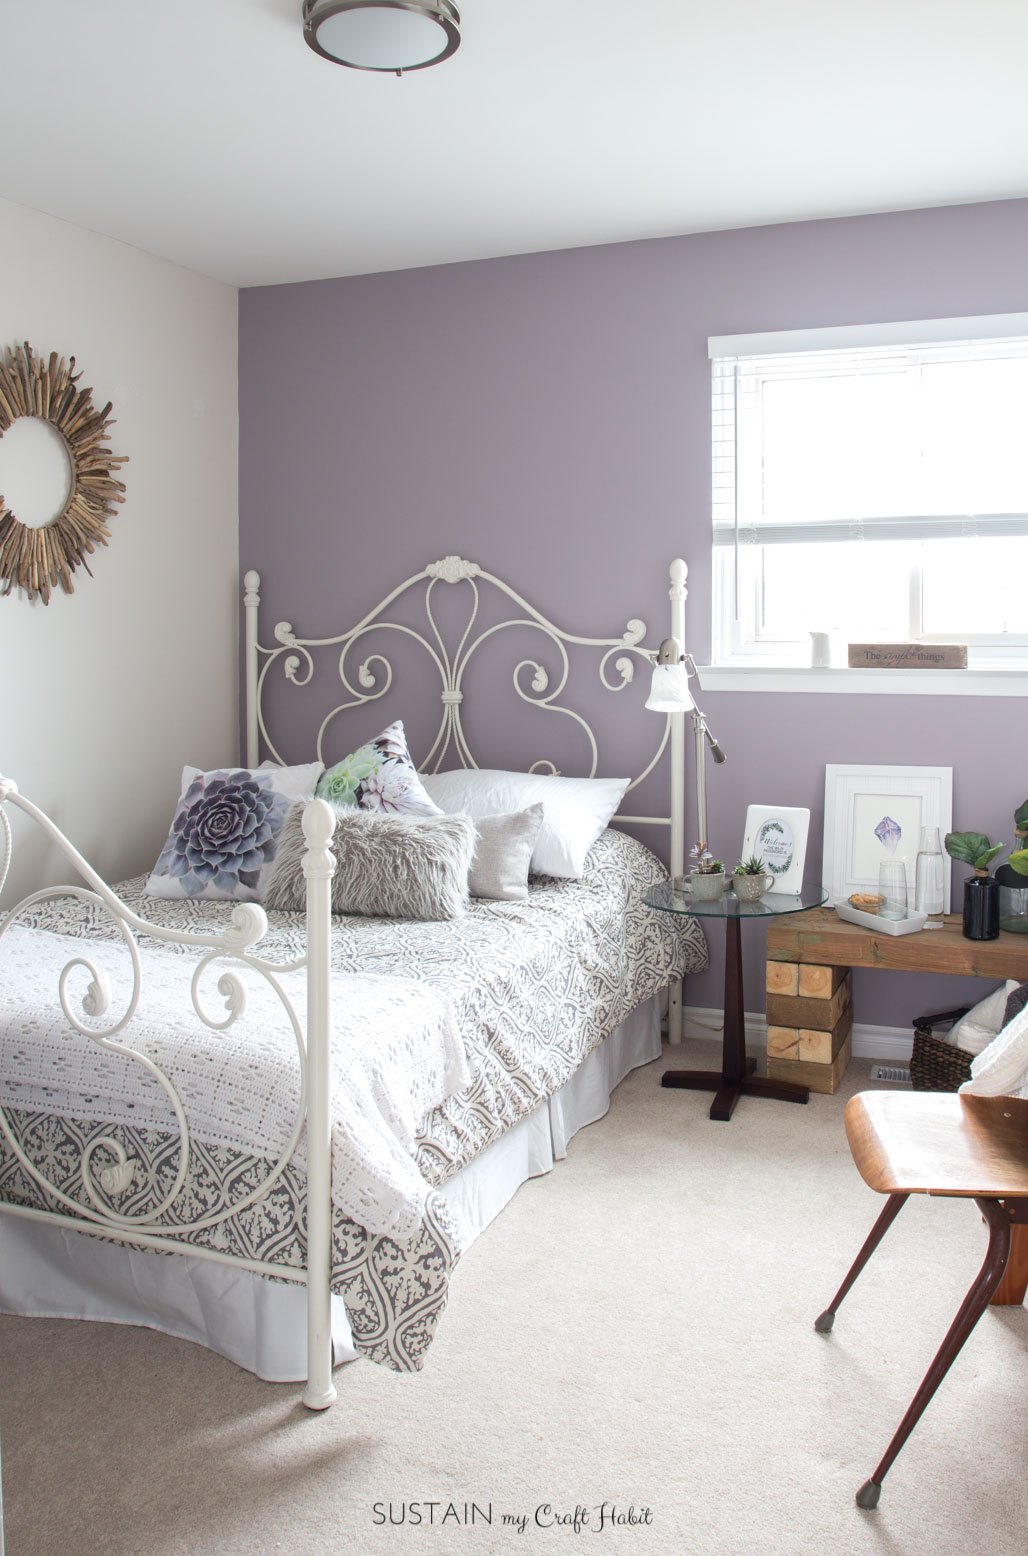 Mauve-lous Guest Bedroom Ideas: A Simple Spare Room ... on Room Decor Pictures  id=96508